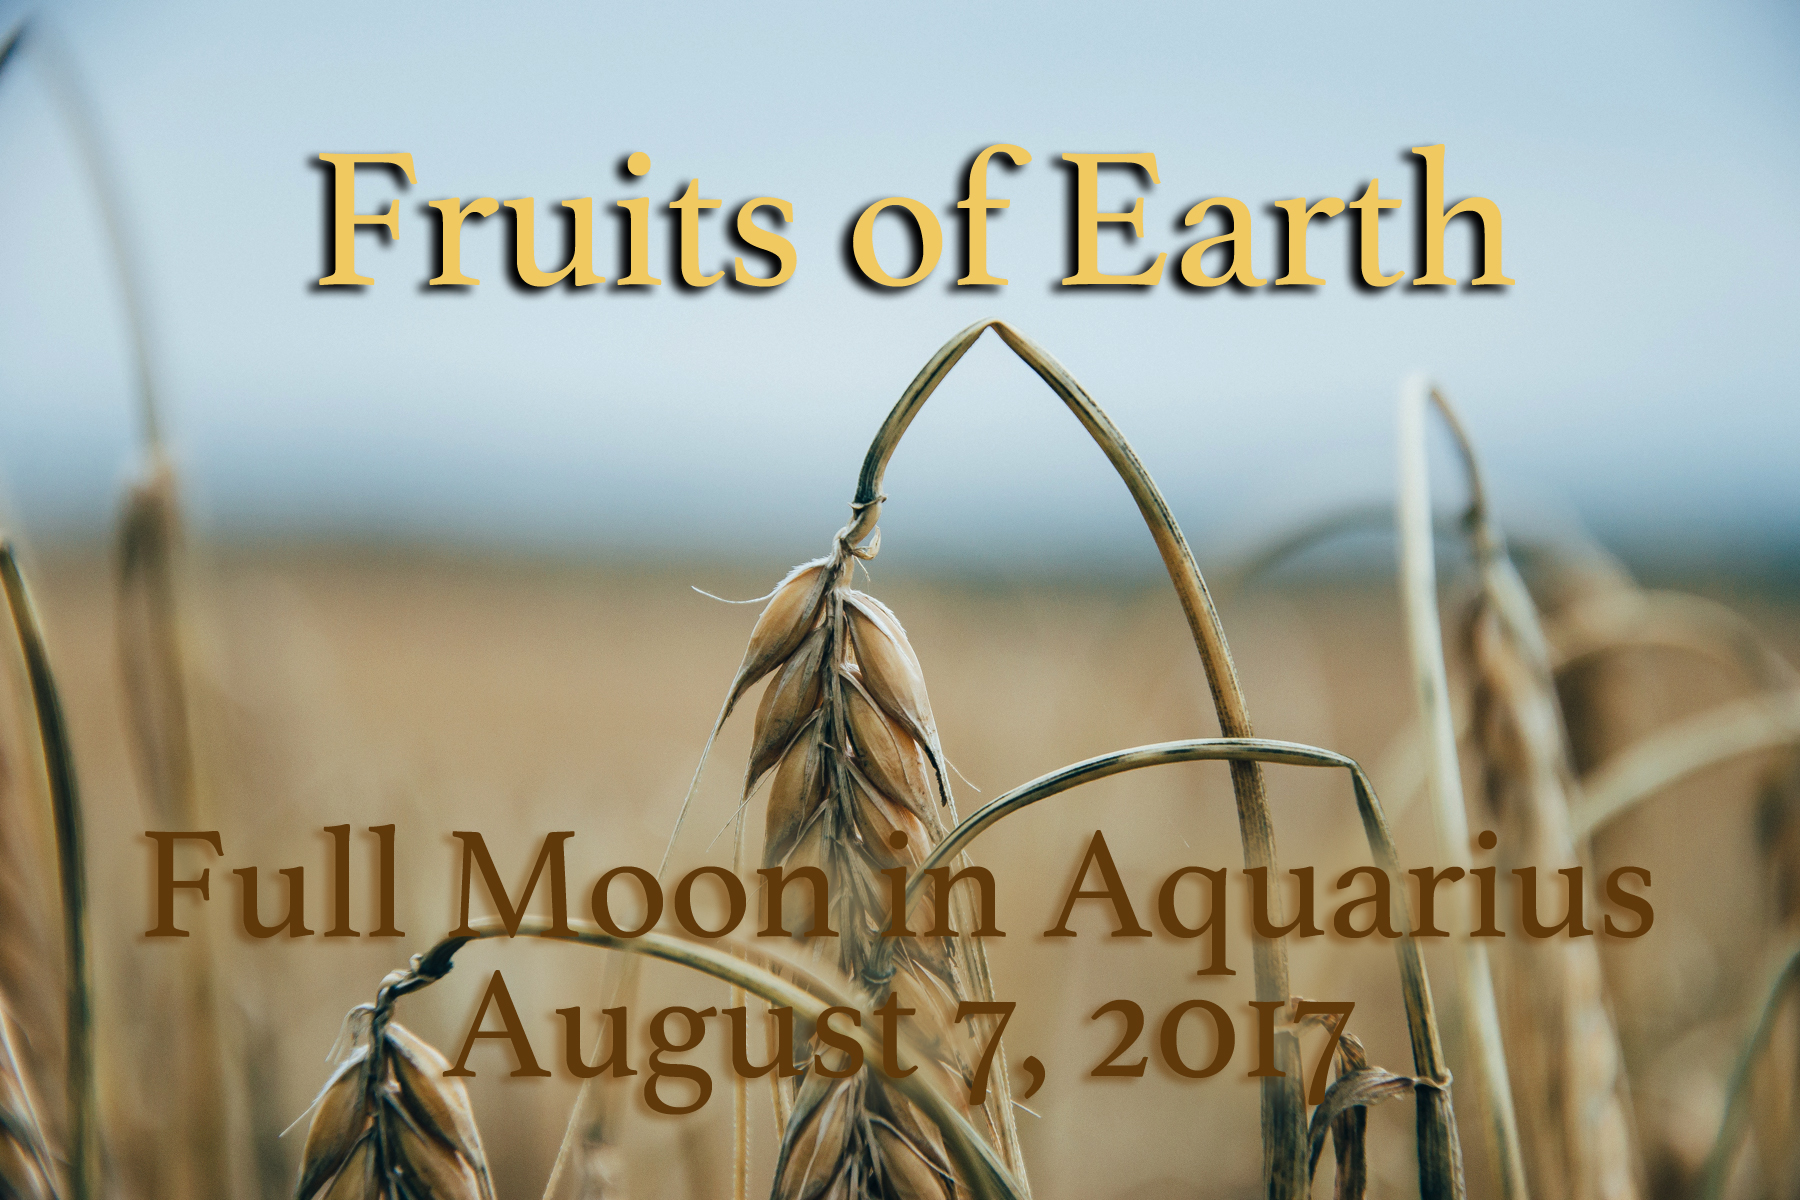 Full Moon in Aquarius: Fruits of Earth